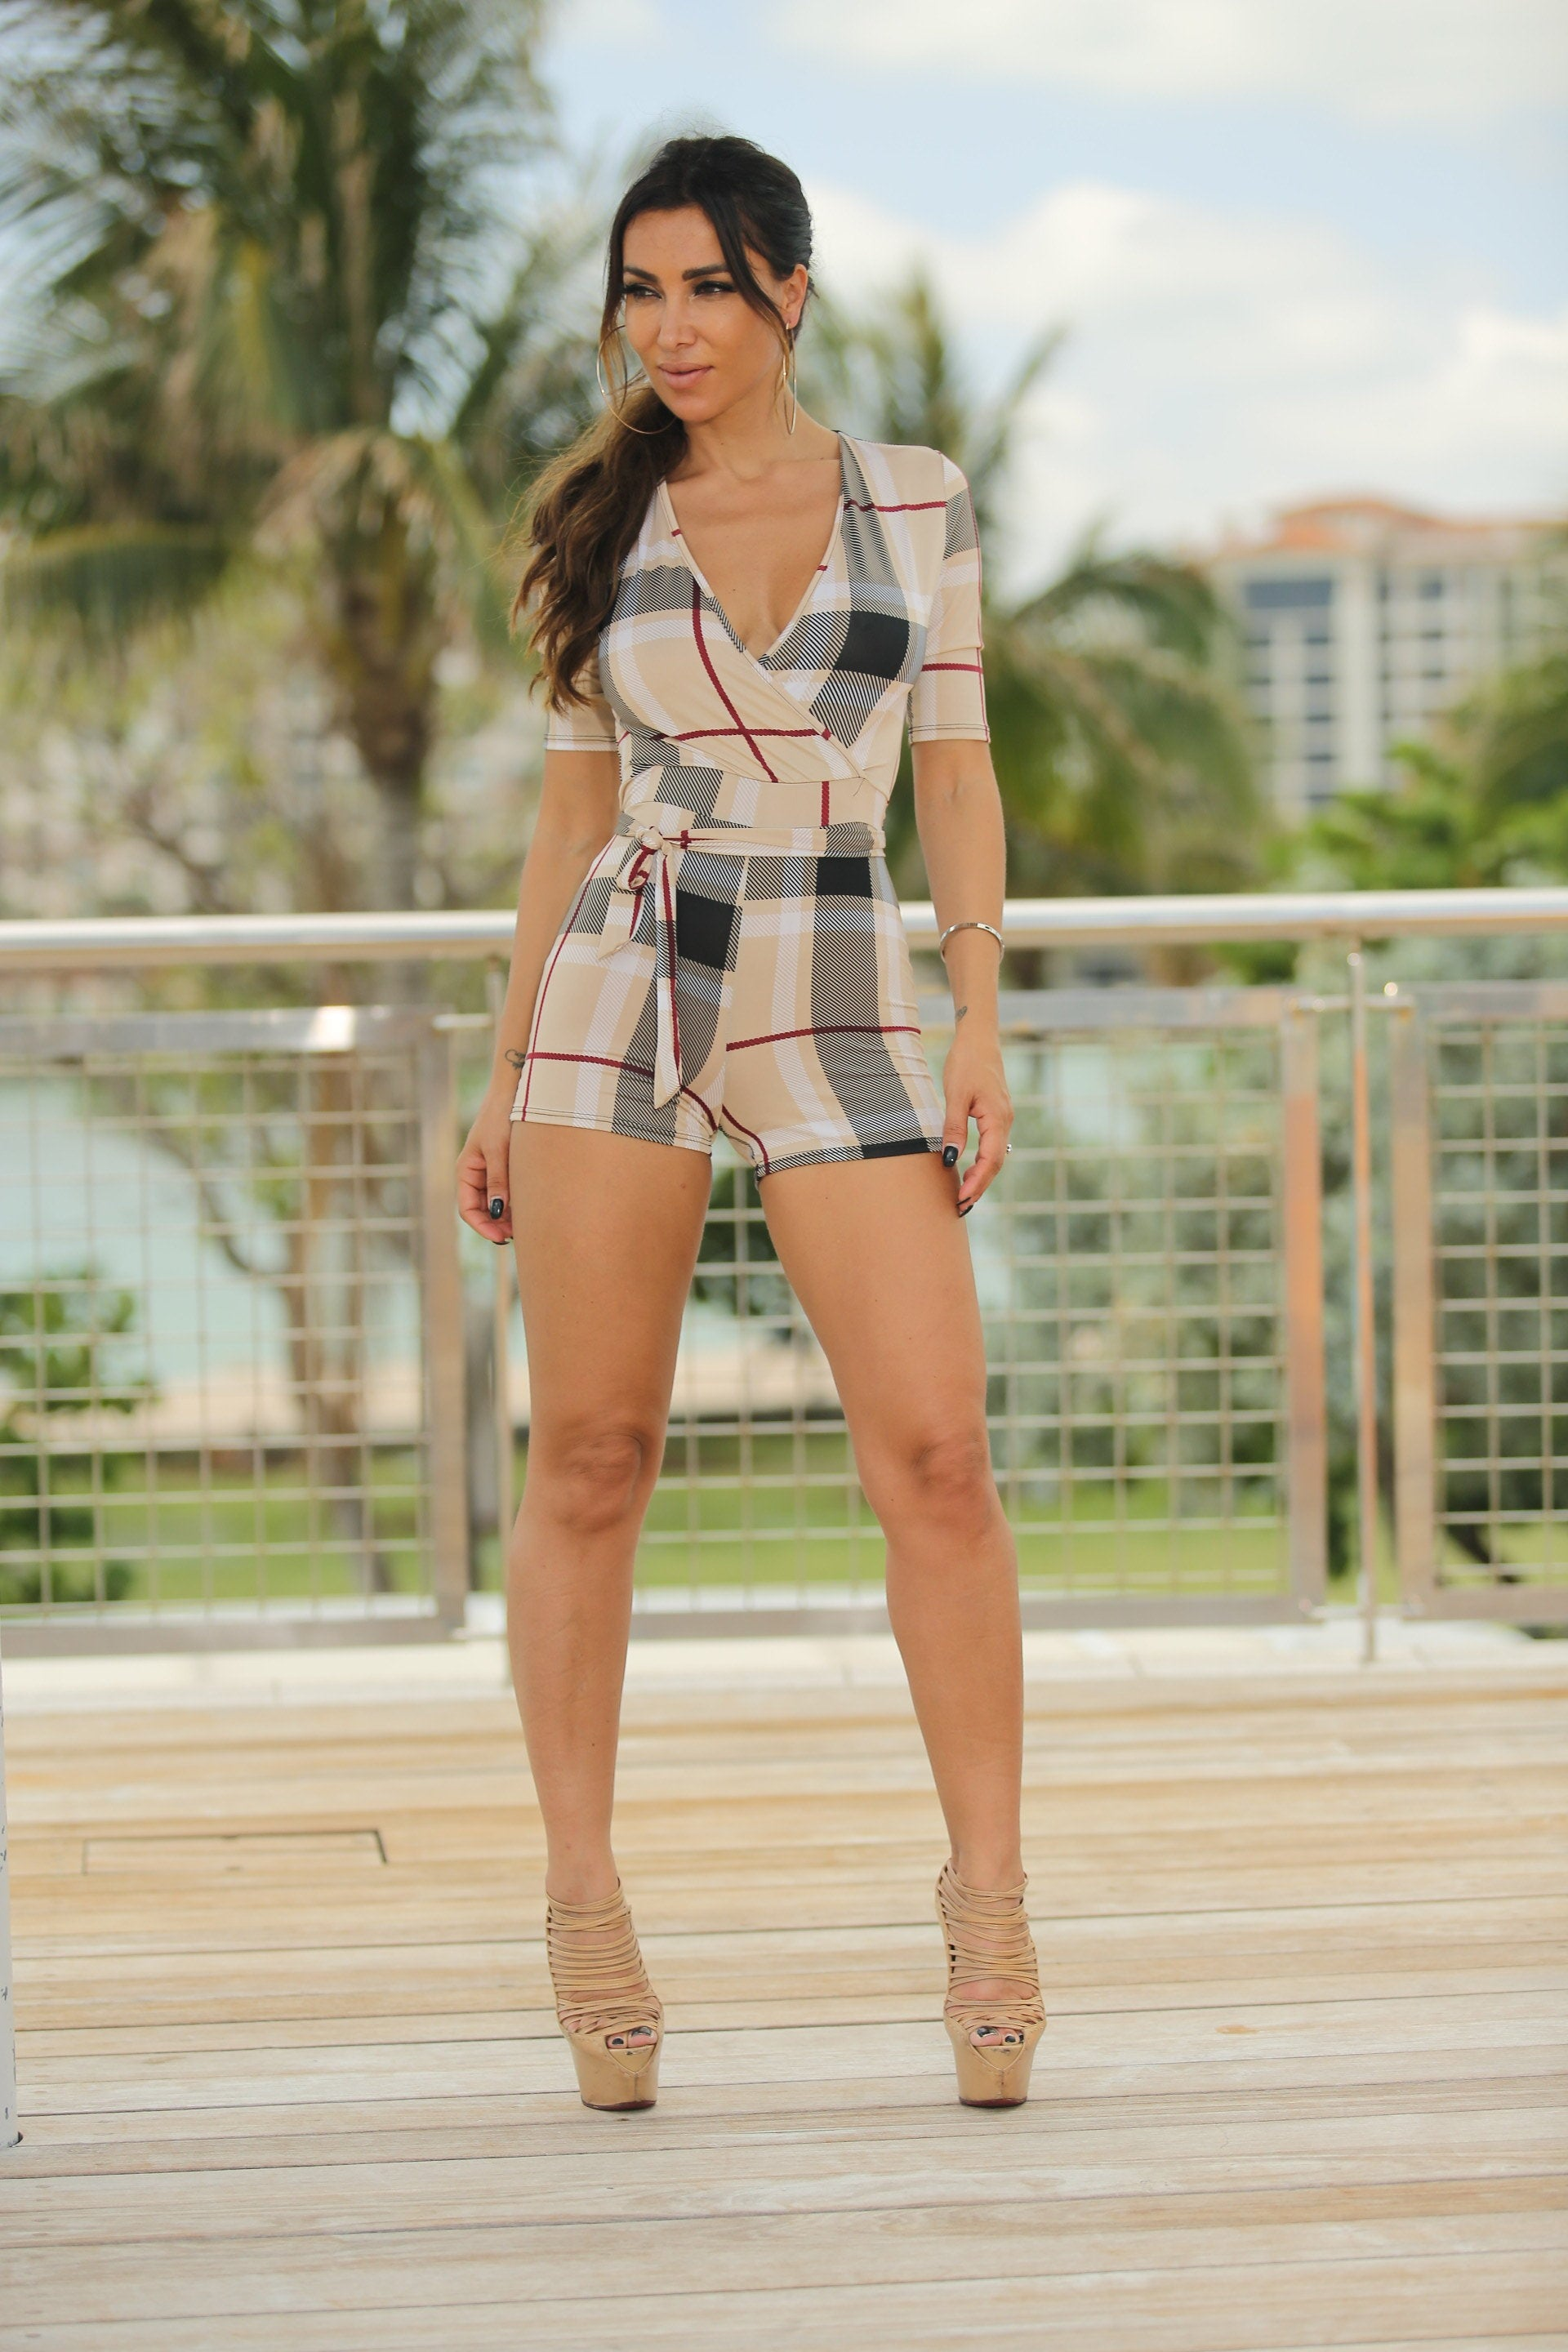 Scarlet - Plaid It Sexy Romper - Semai House Of fashion